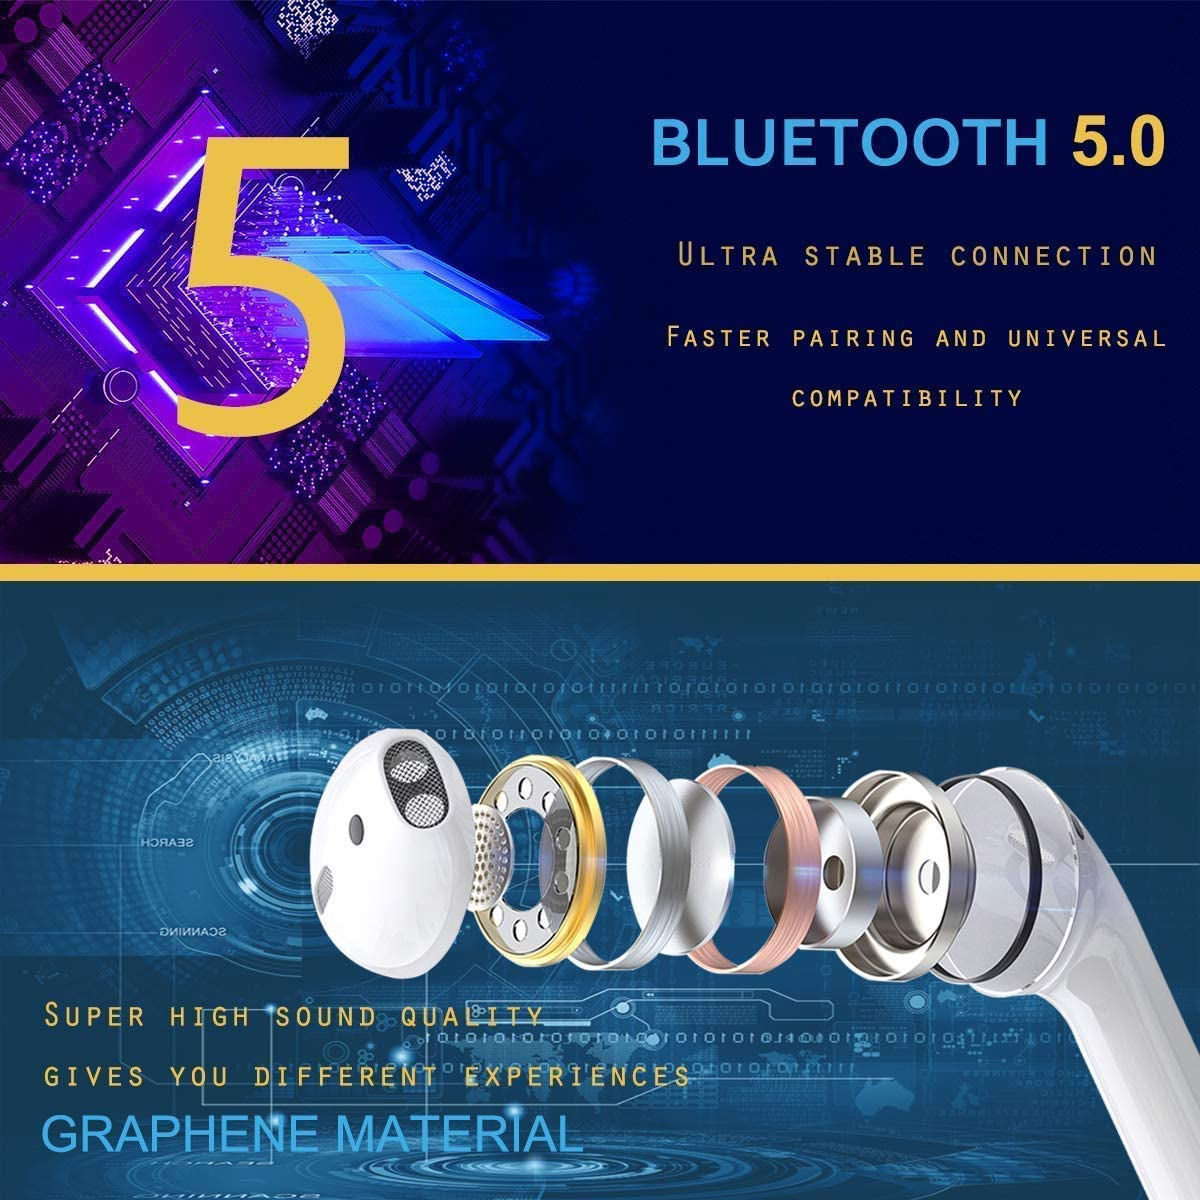 Wireless Earbuds Bluetooth 5.0 Headphones Sweat-Proof Sports in-Ear Headphones Compatible with iPhone Android Laptop and Smart Devices